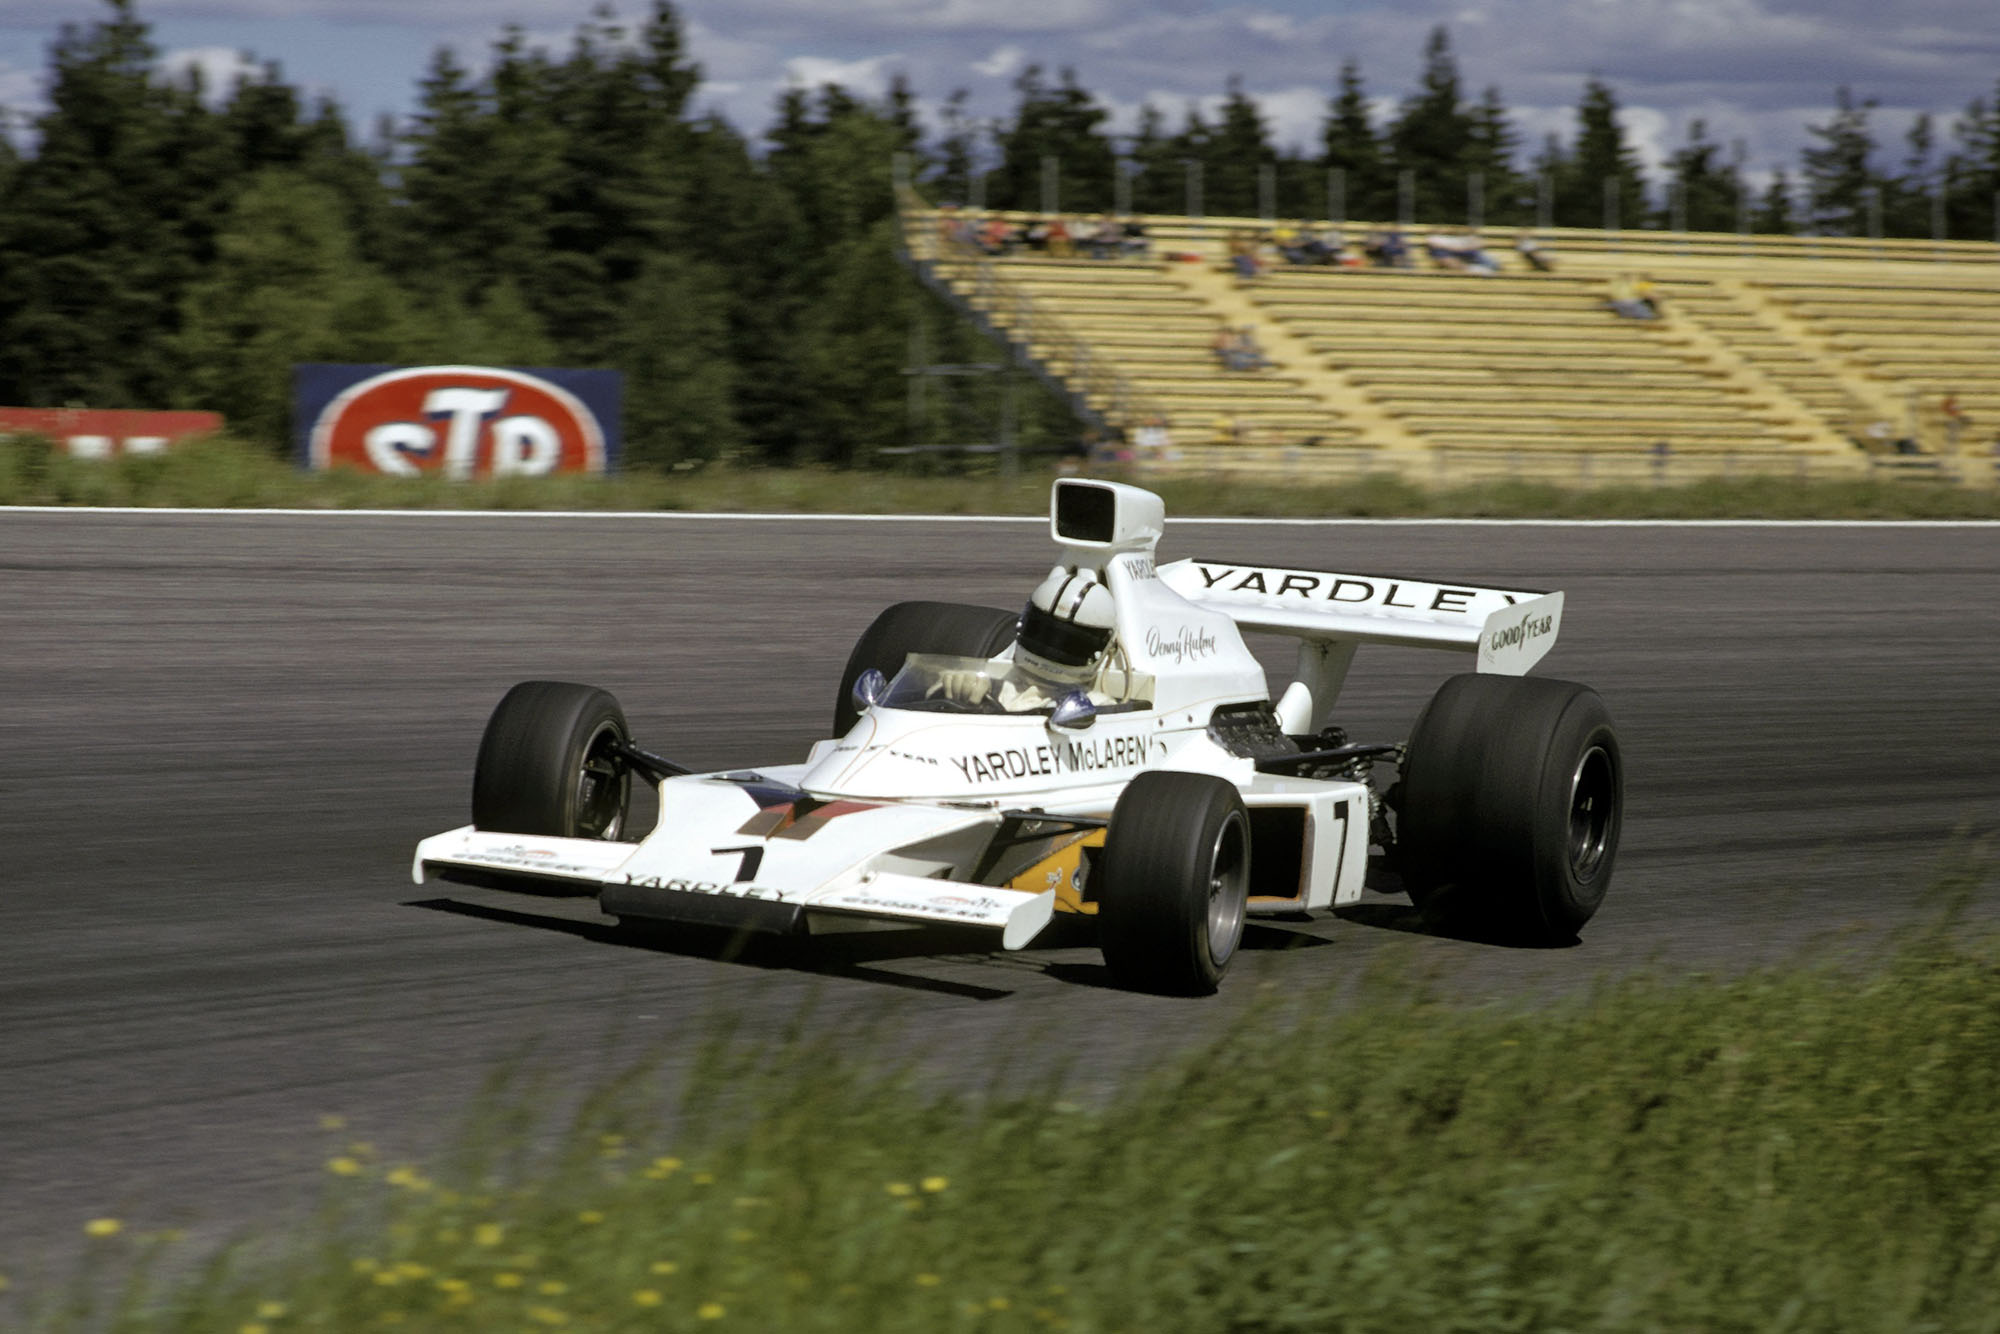 Denny Hulme driving for McLaren at the 1973 Swedish Grand Prix.